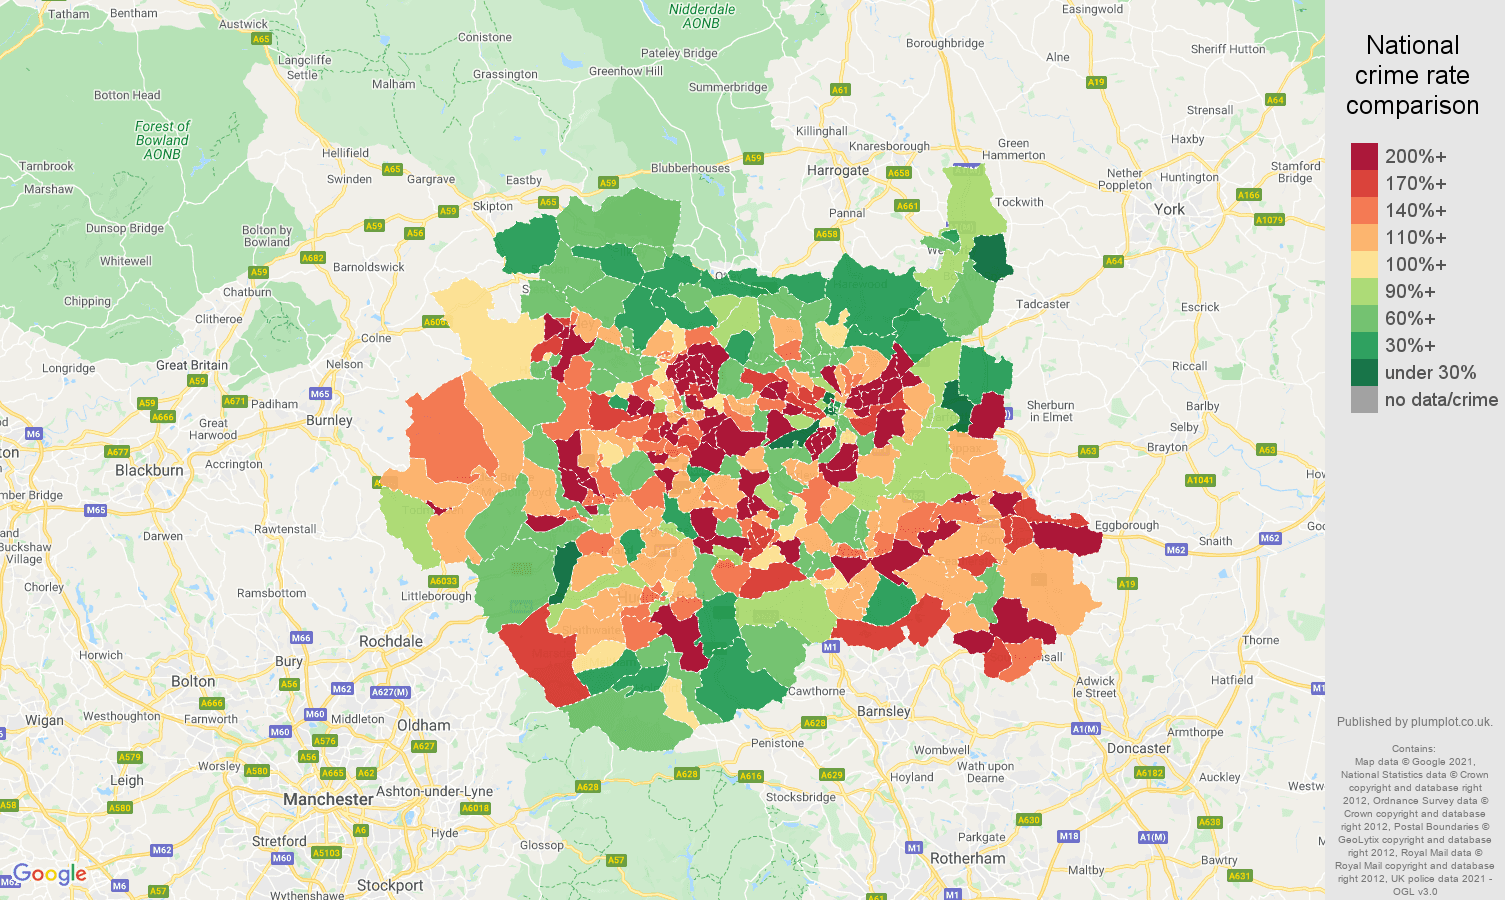 West Yorkshire criminal damage and arson crime rate comparison map